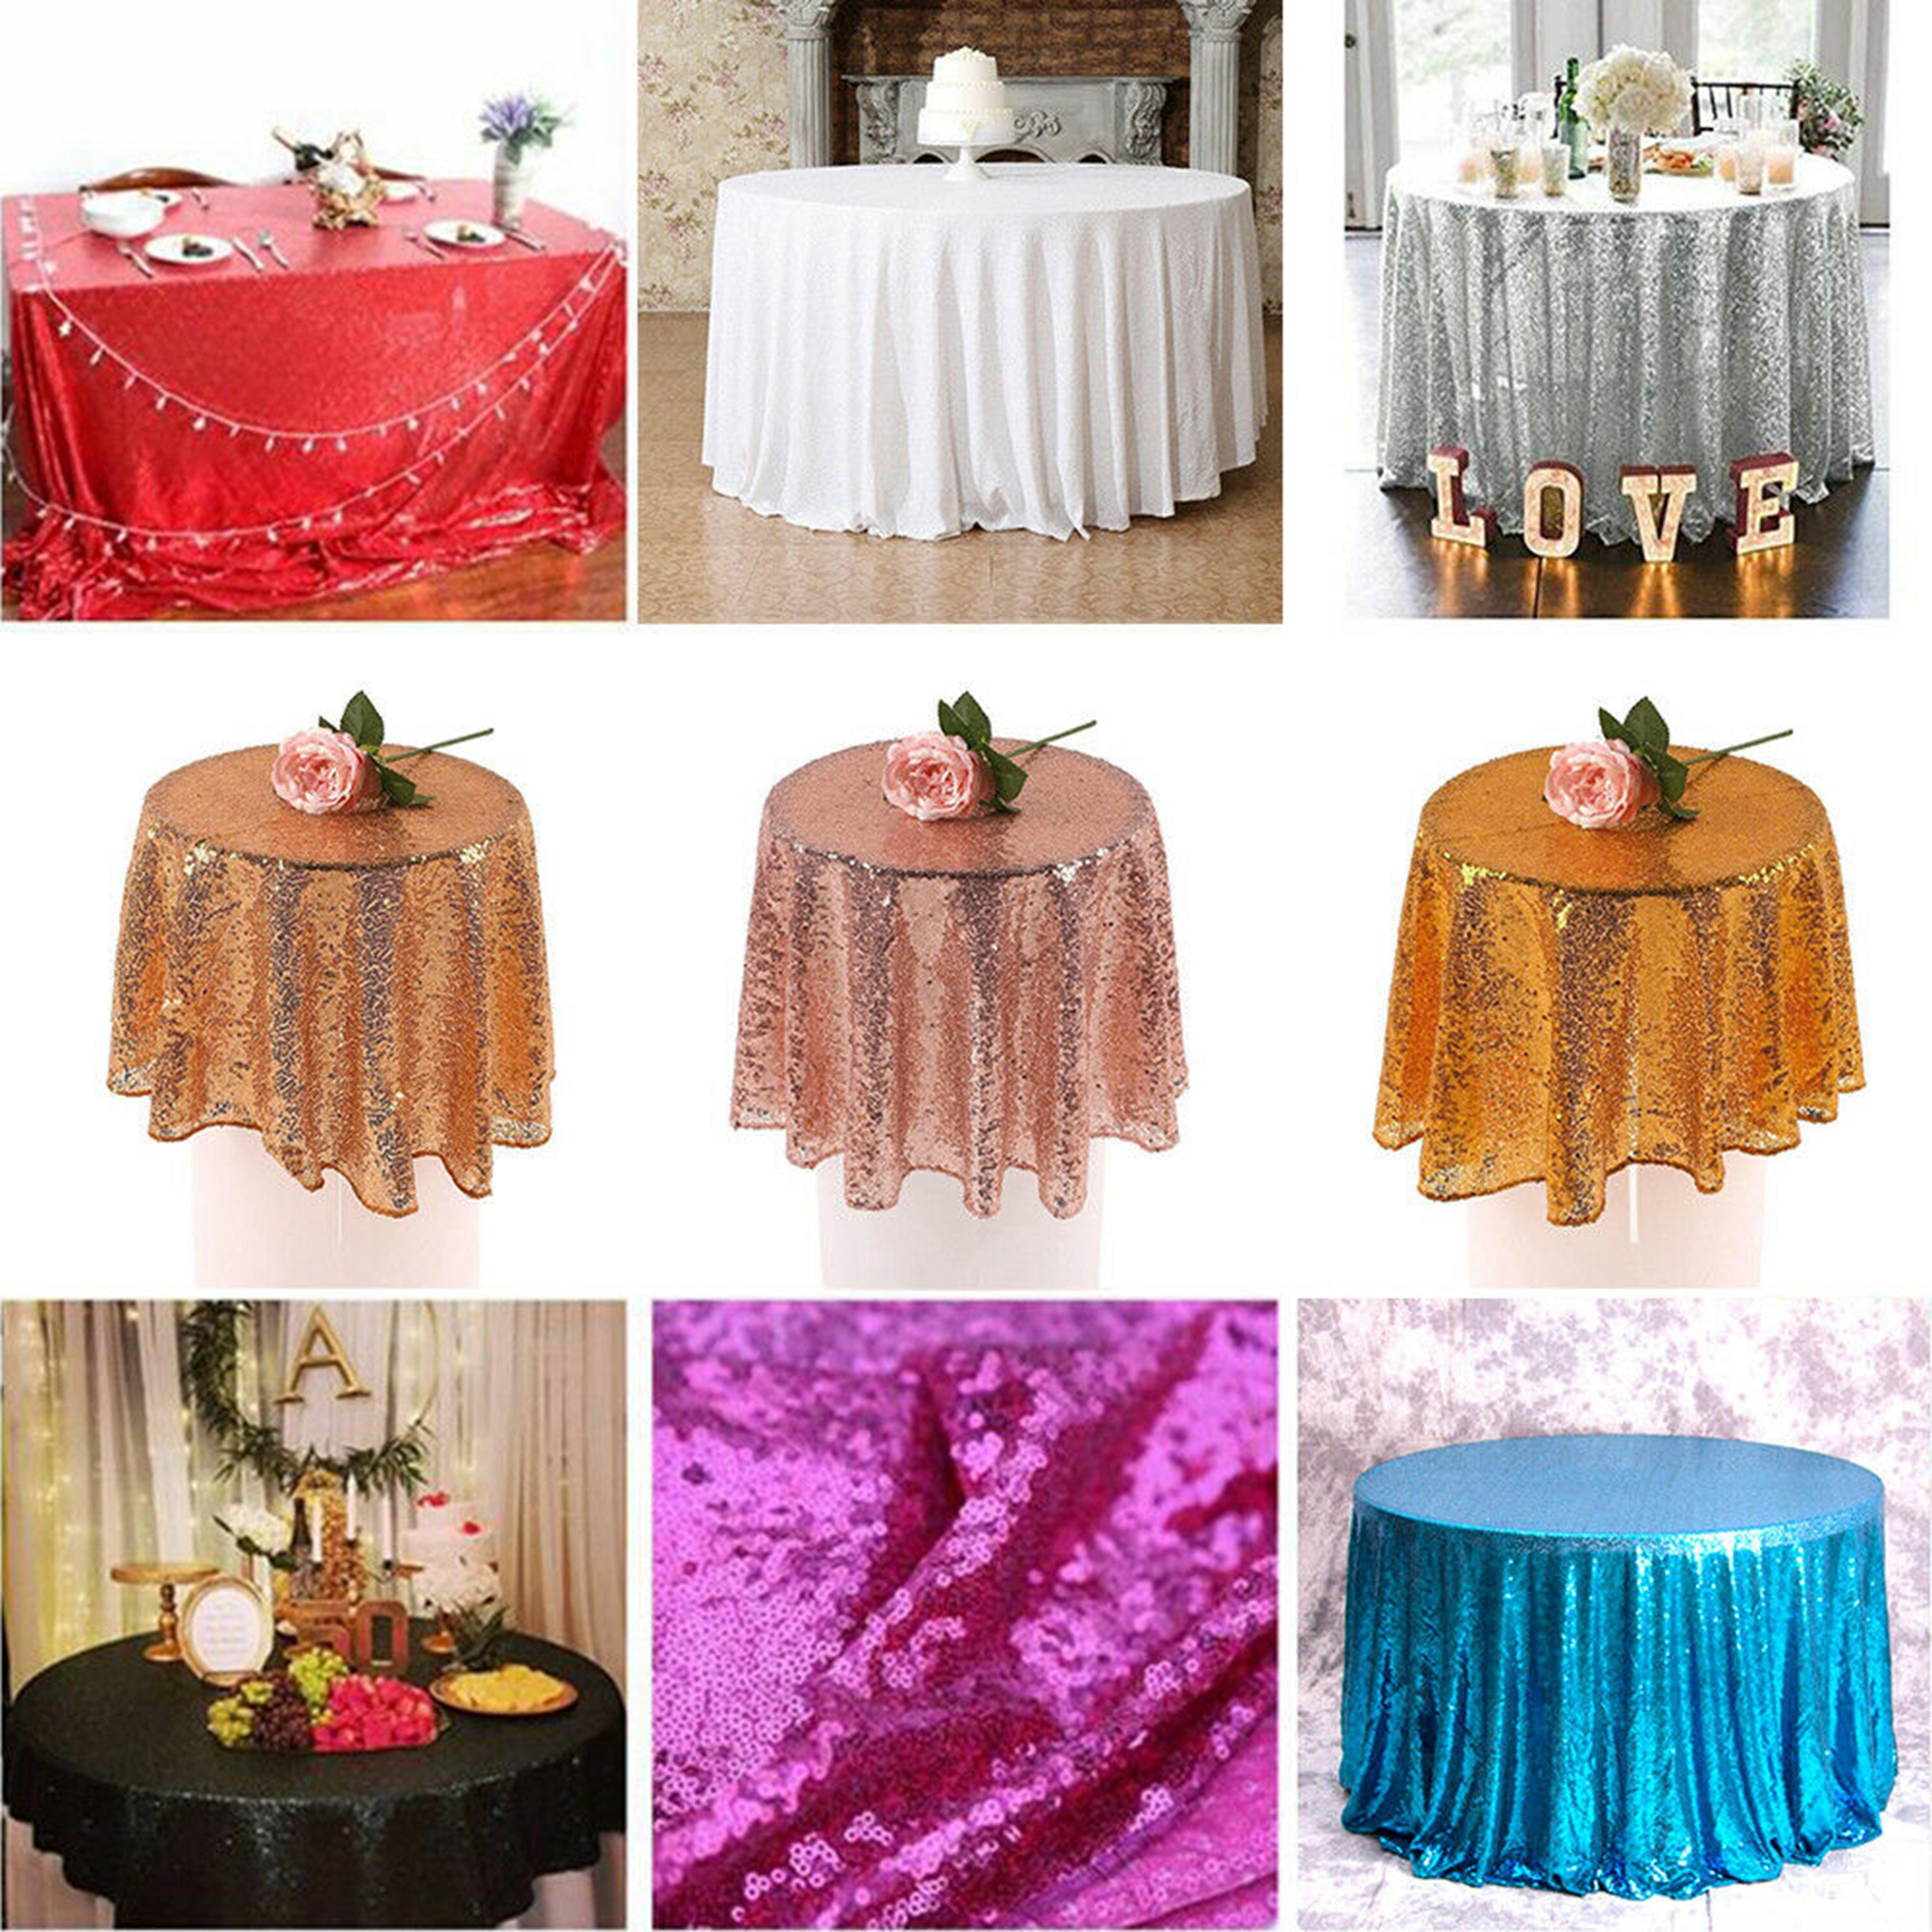 Sparkle Sequin Tablecloth Cover, Glitter Round Tablecloths Rose Gold Silver Champagne Wedding Birthday Baby Shower Event Banquet Christmas Party Home Decor, dia 60cm-330cm